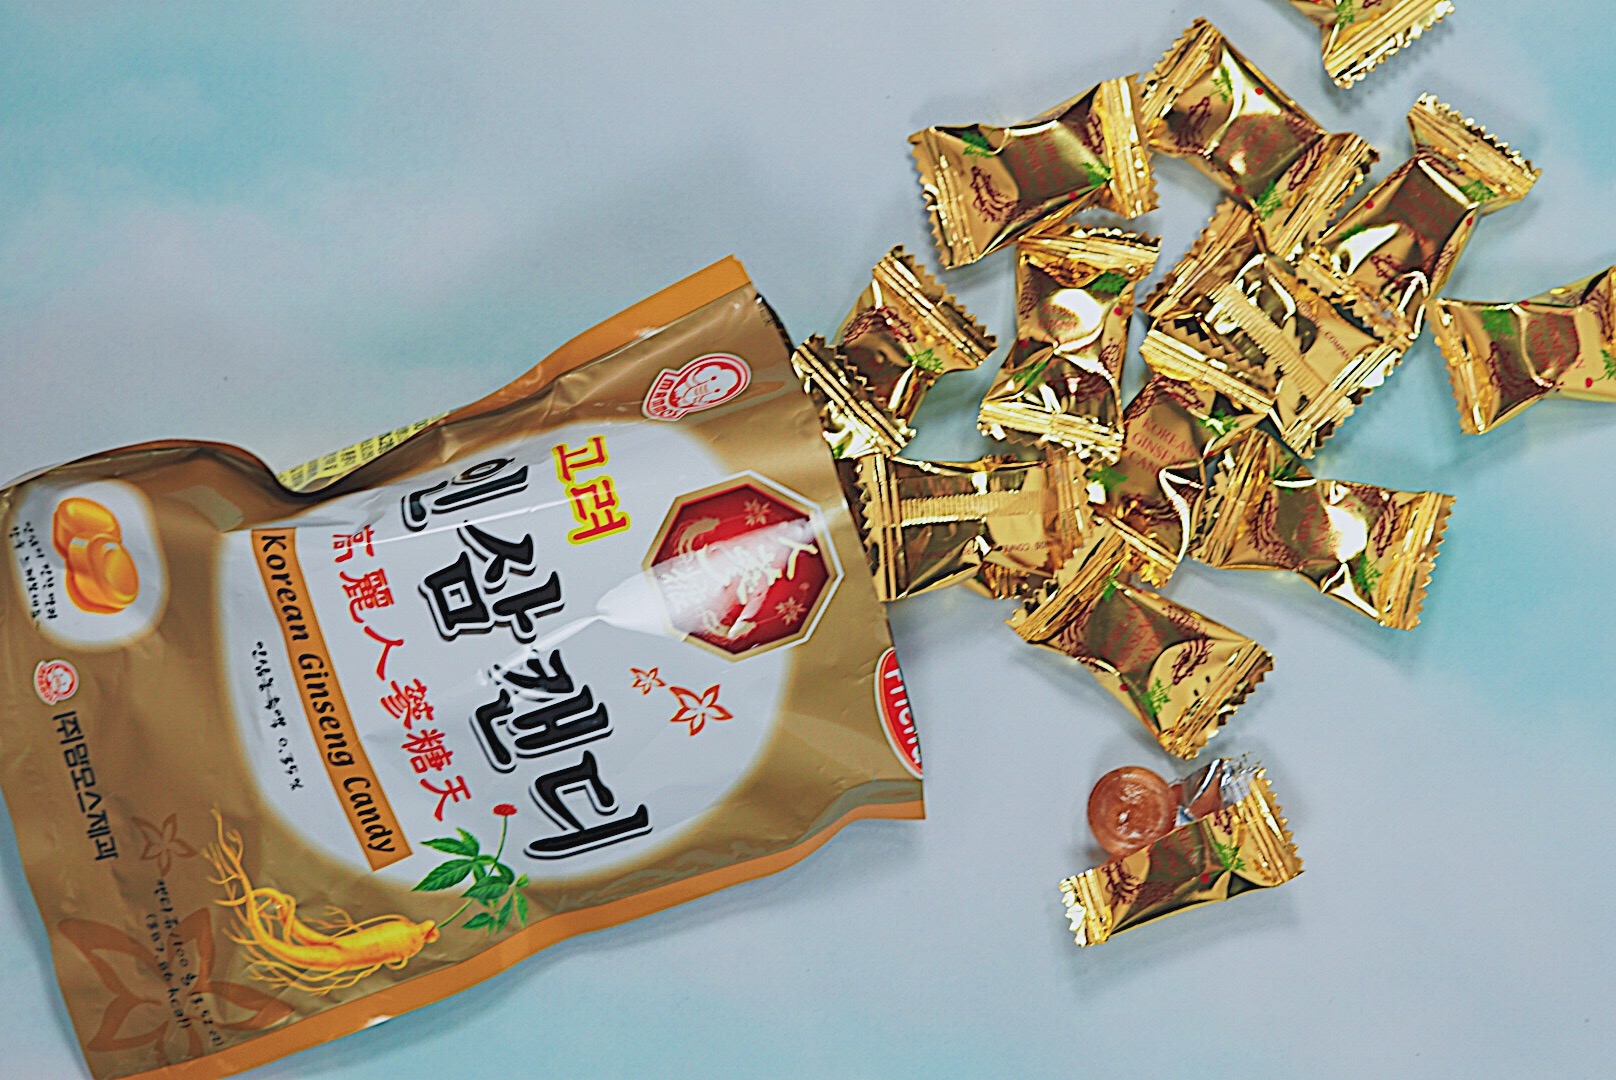 Insahm Candy - Ginseng flavored!